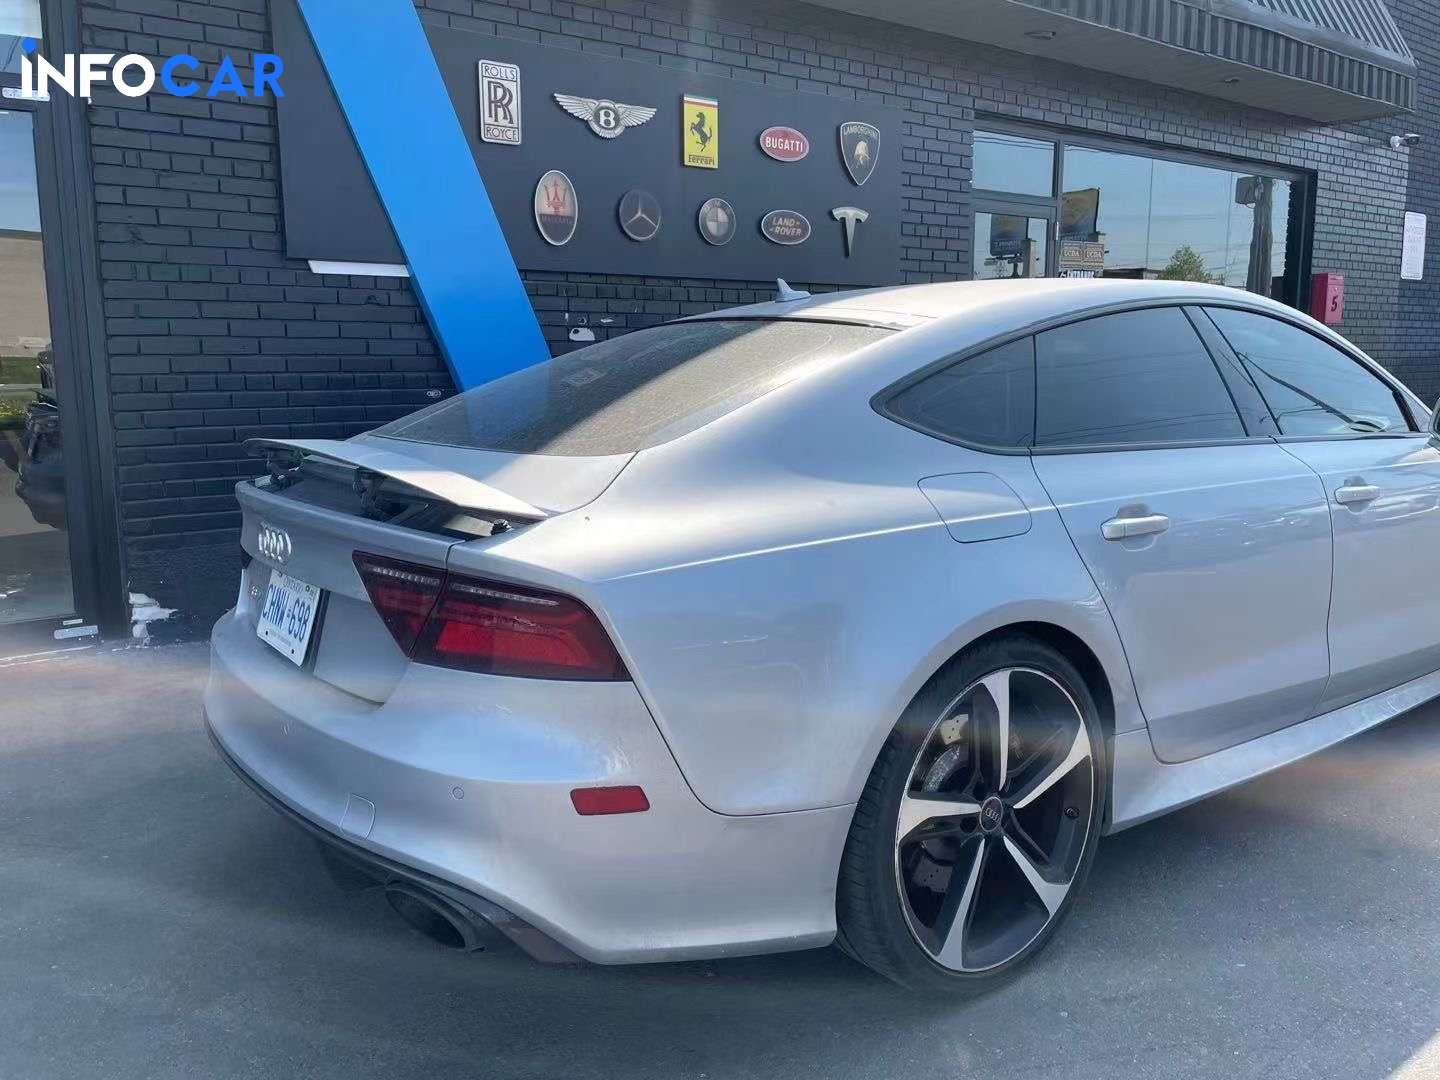 2017 Audi RS 7 null - INFOCAR - Toronto's Most Comprehensive New and Used Auto Trading Platform